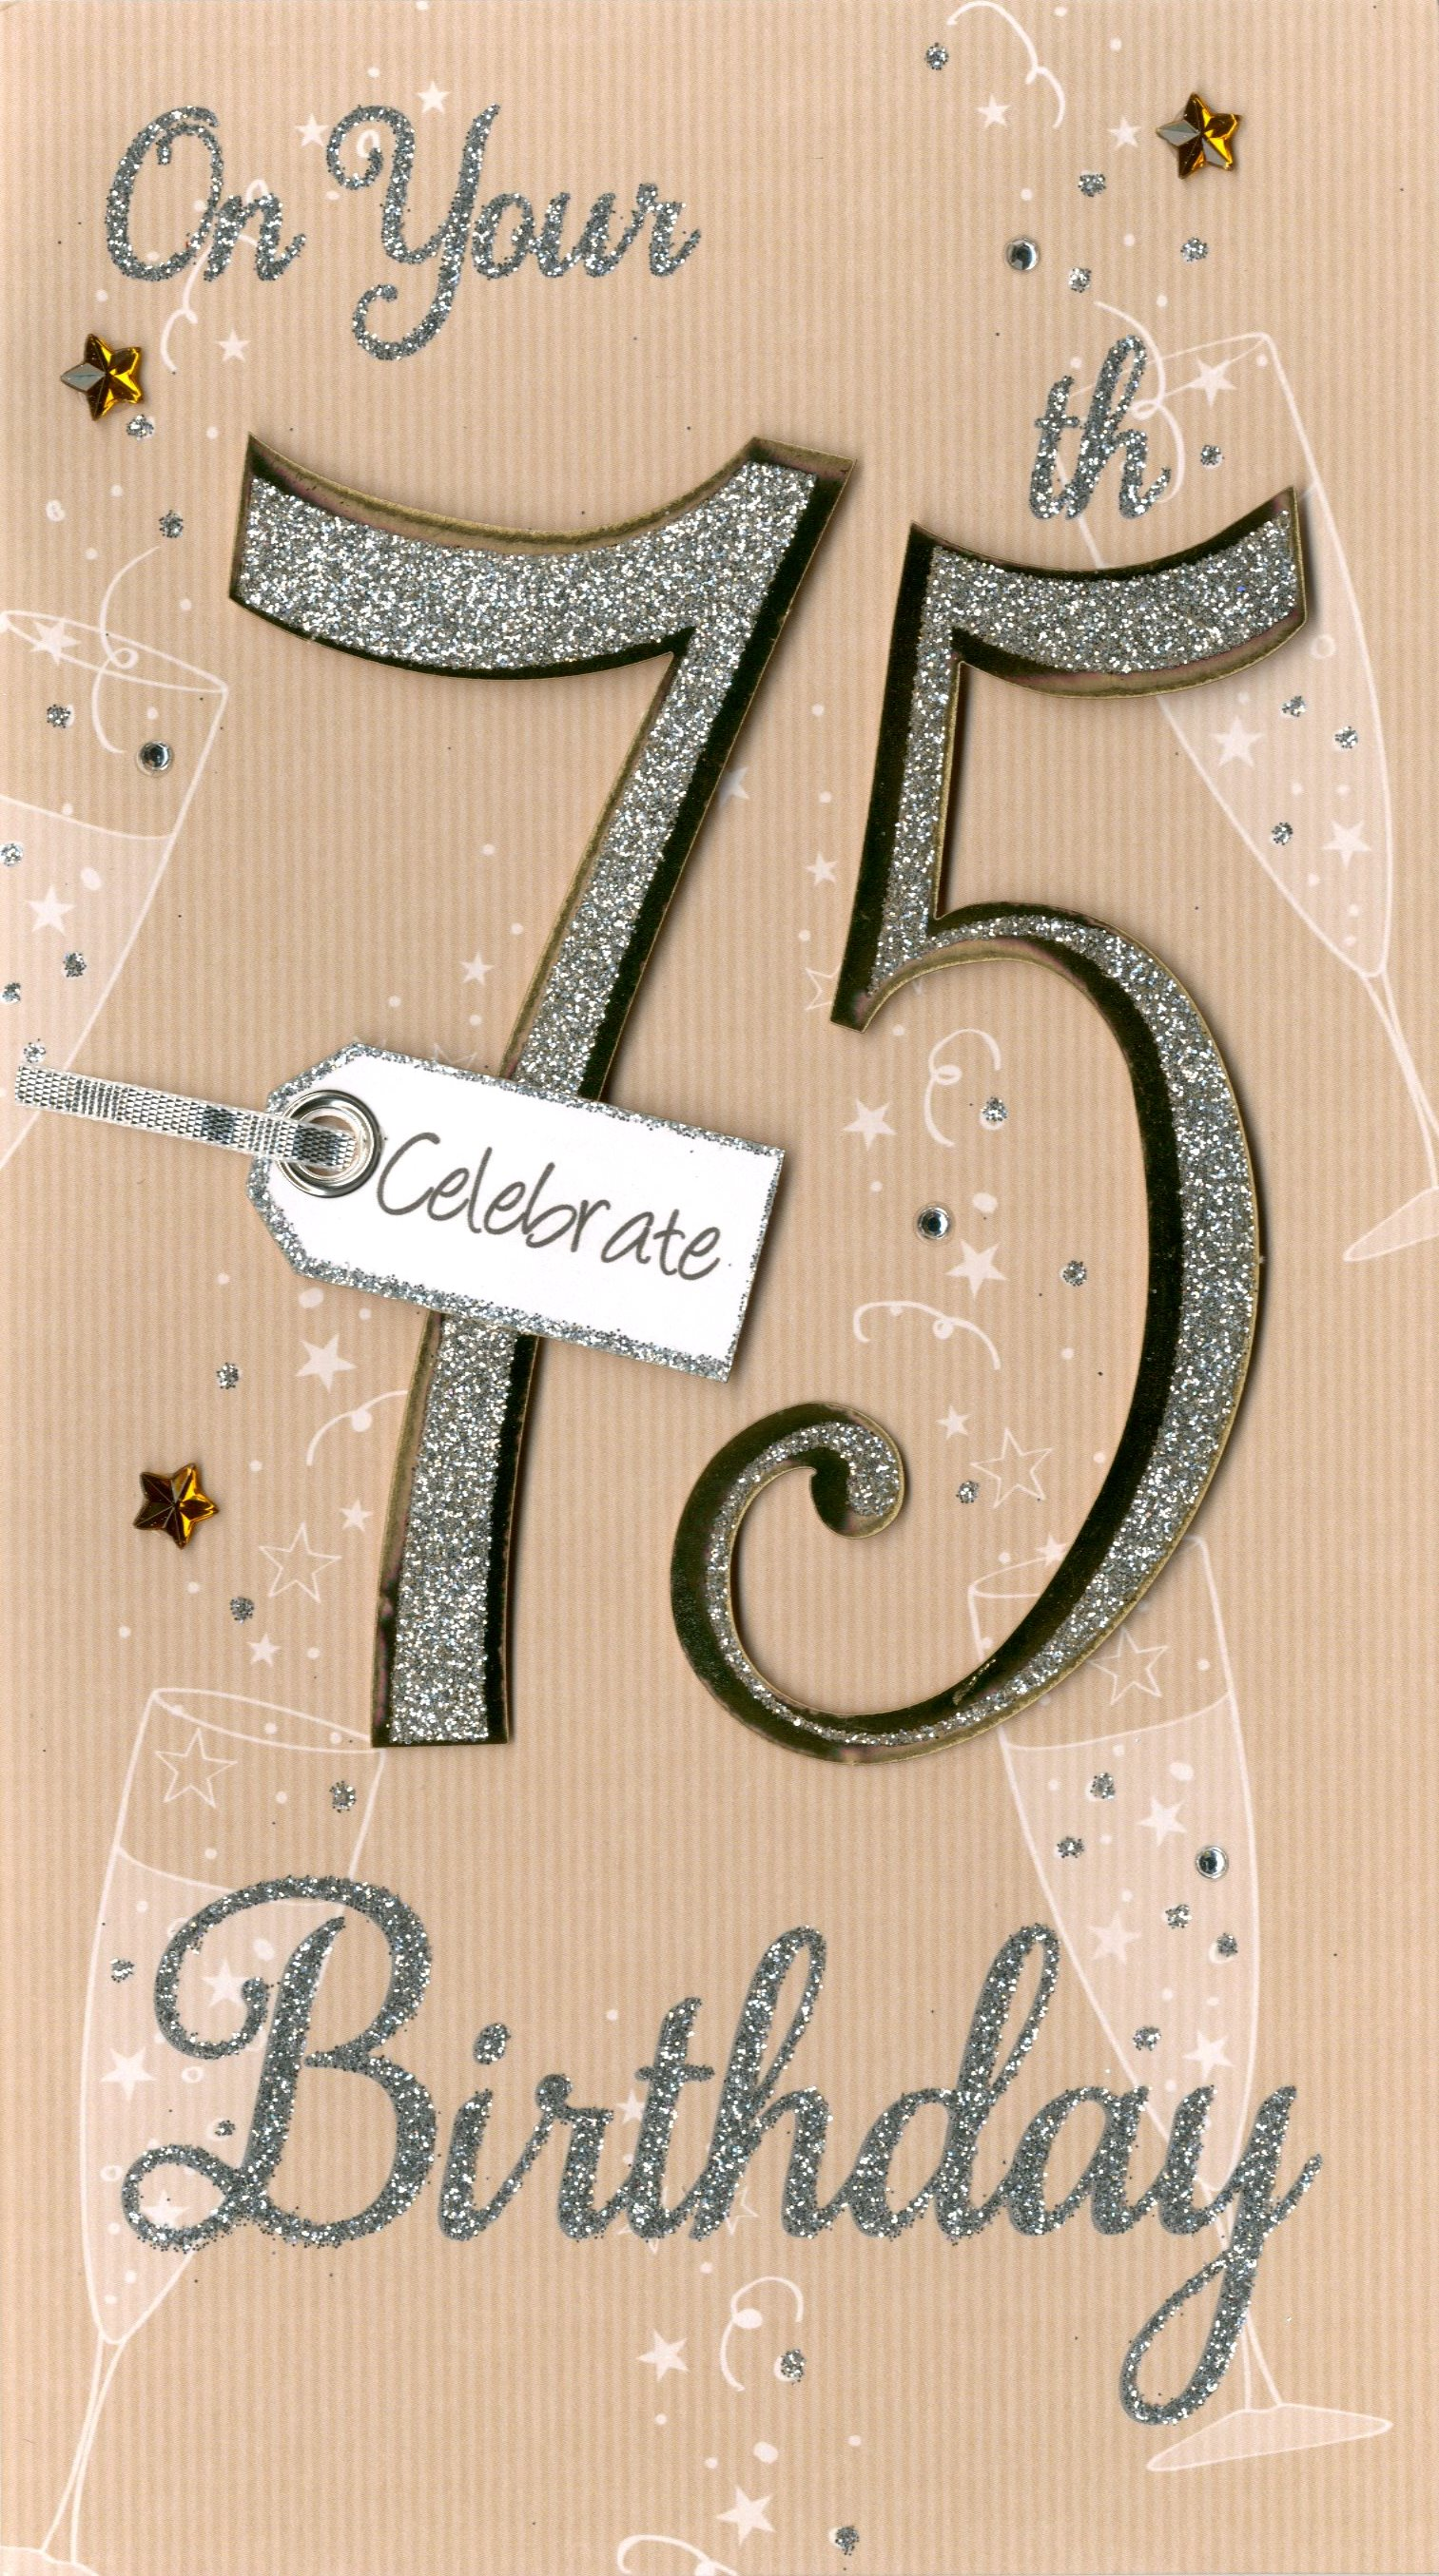 Happy 75th Birthday Greeting Card Cards Love Kates